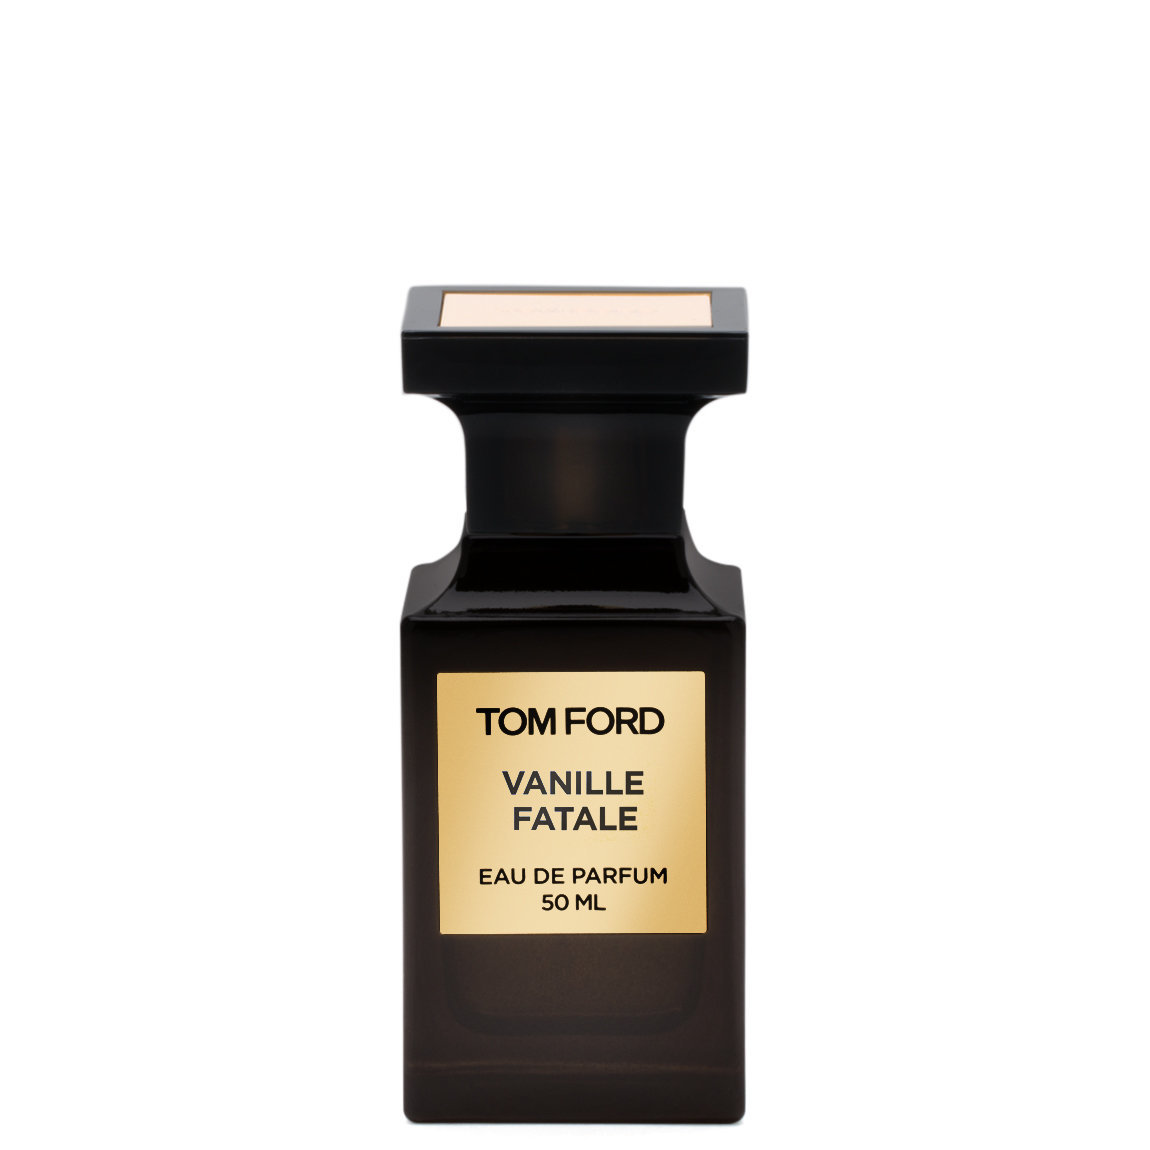 TOM FORD Vanille Fatale EDP product smear.